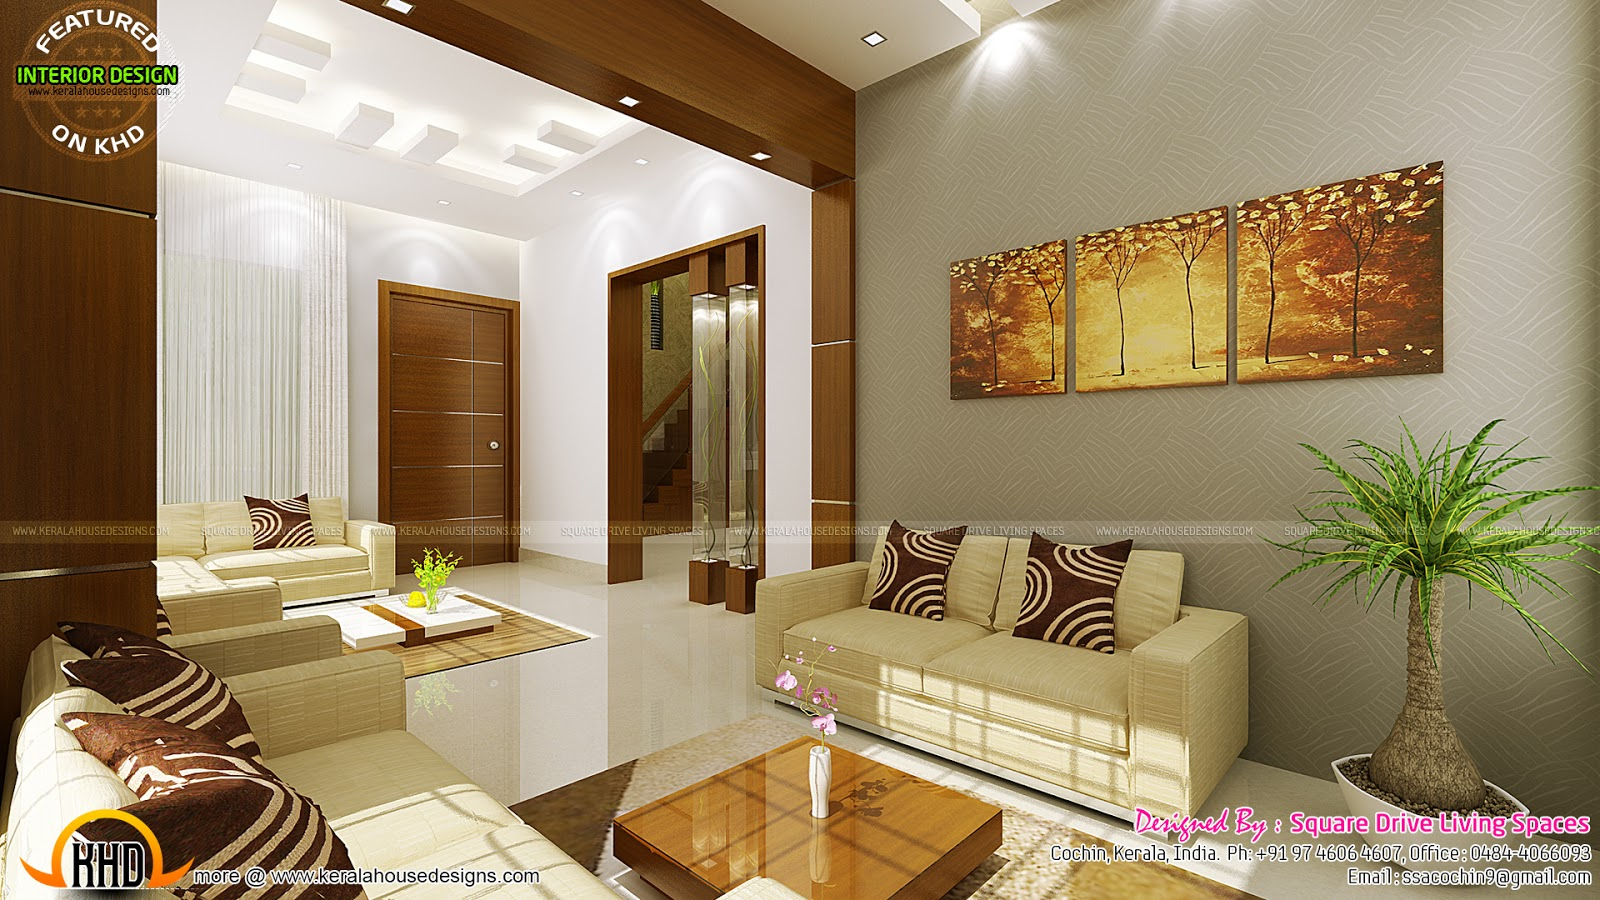 Contemporary kitchen dining and living room kerala home for Interior desings